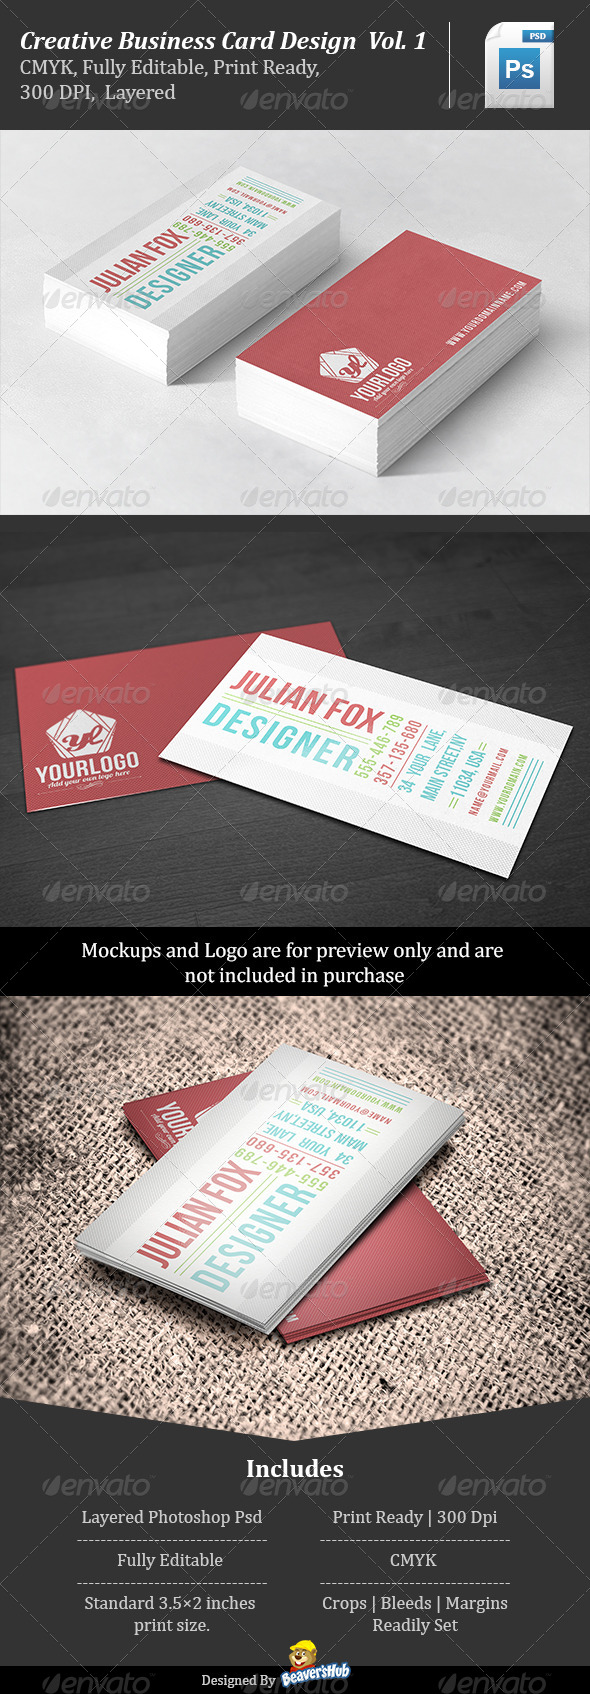 GraphicRiver Creative Business Card Design Vol.1 5496643